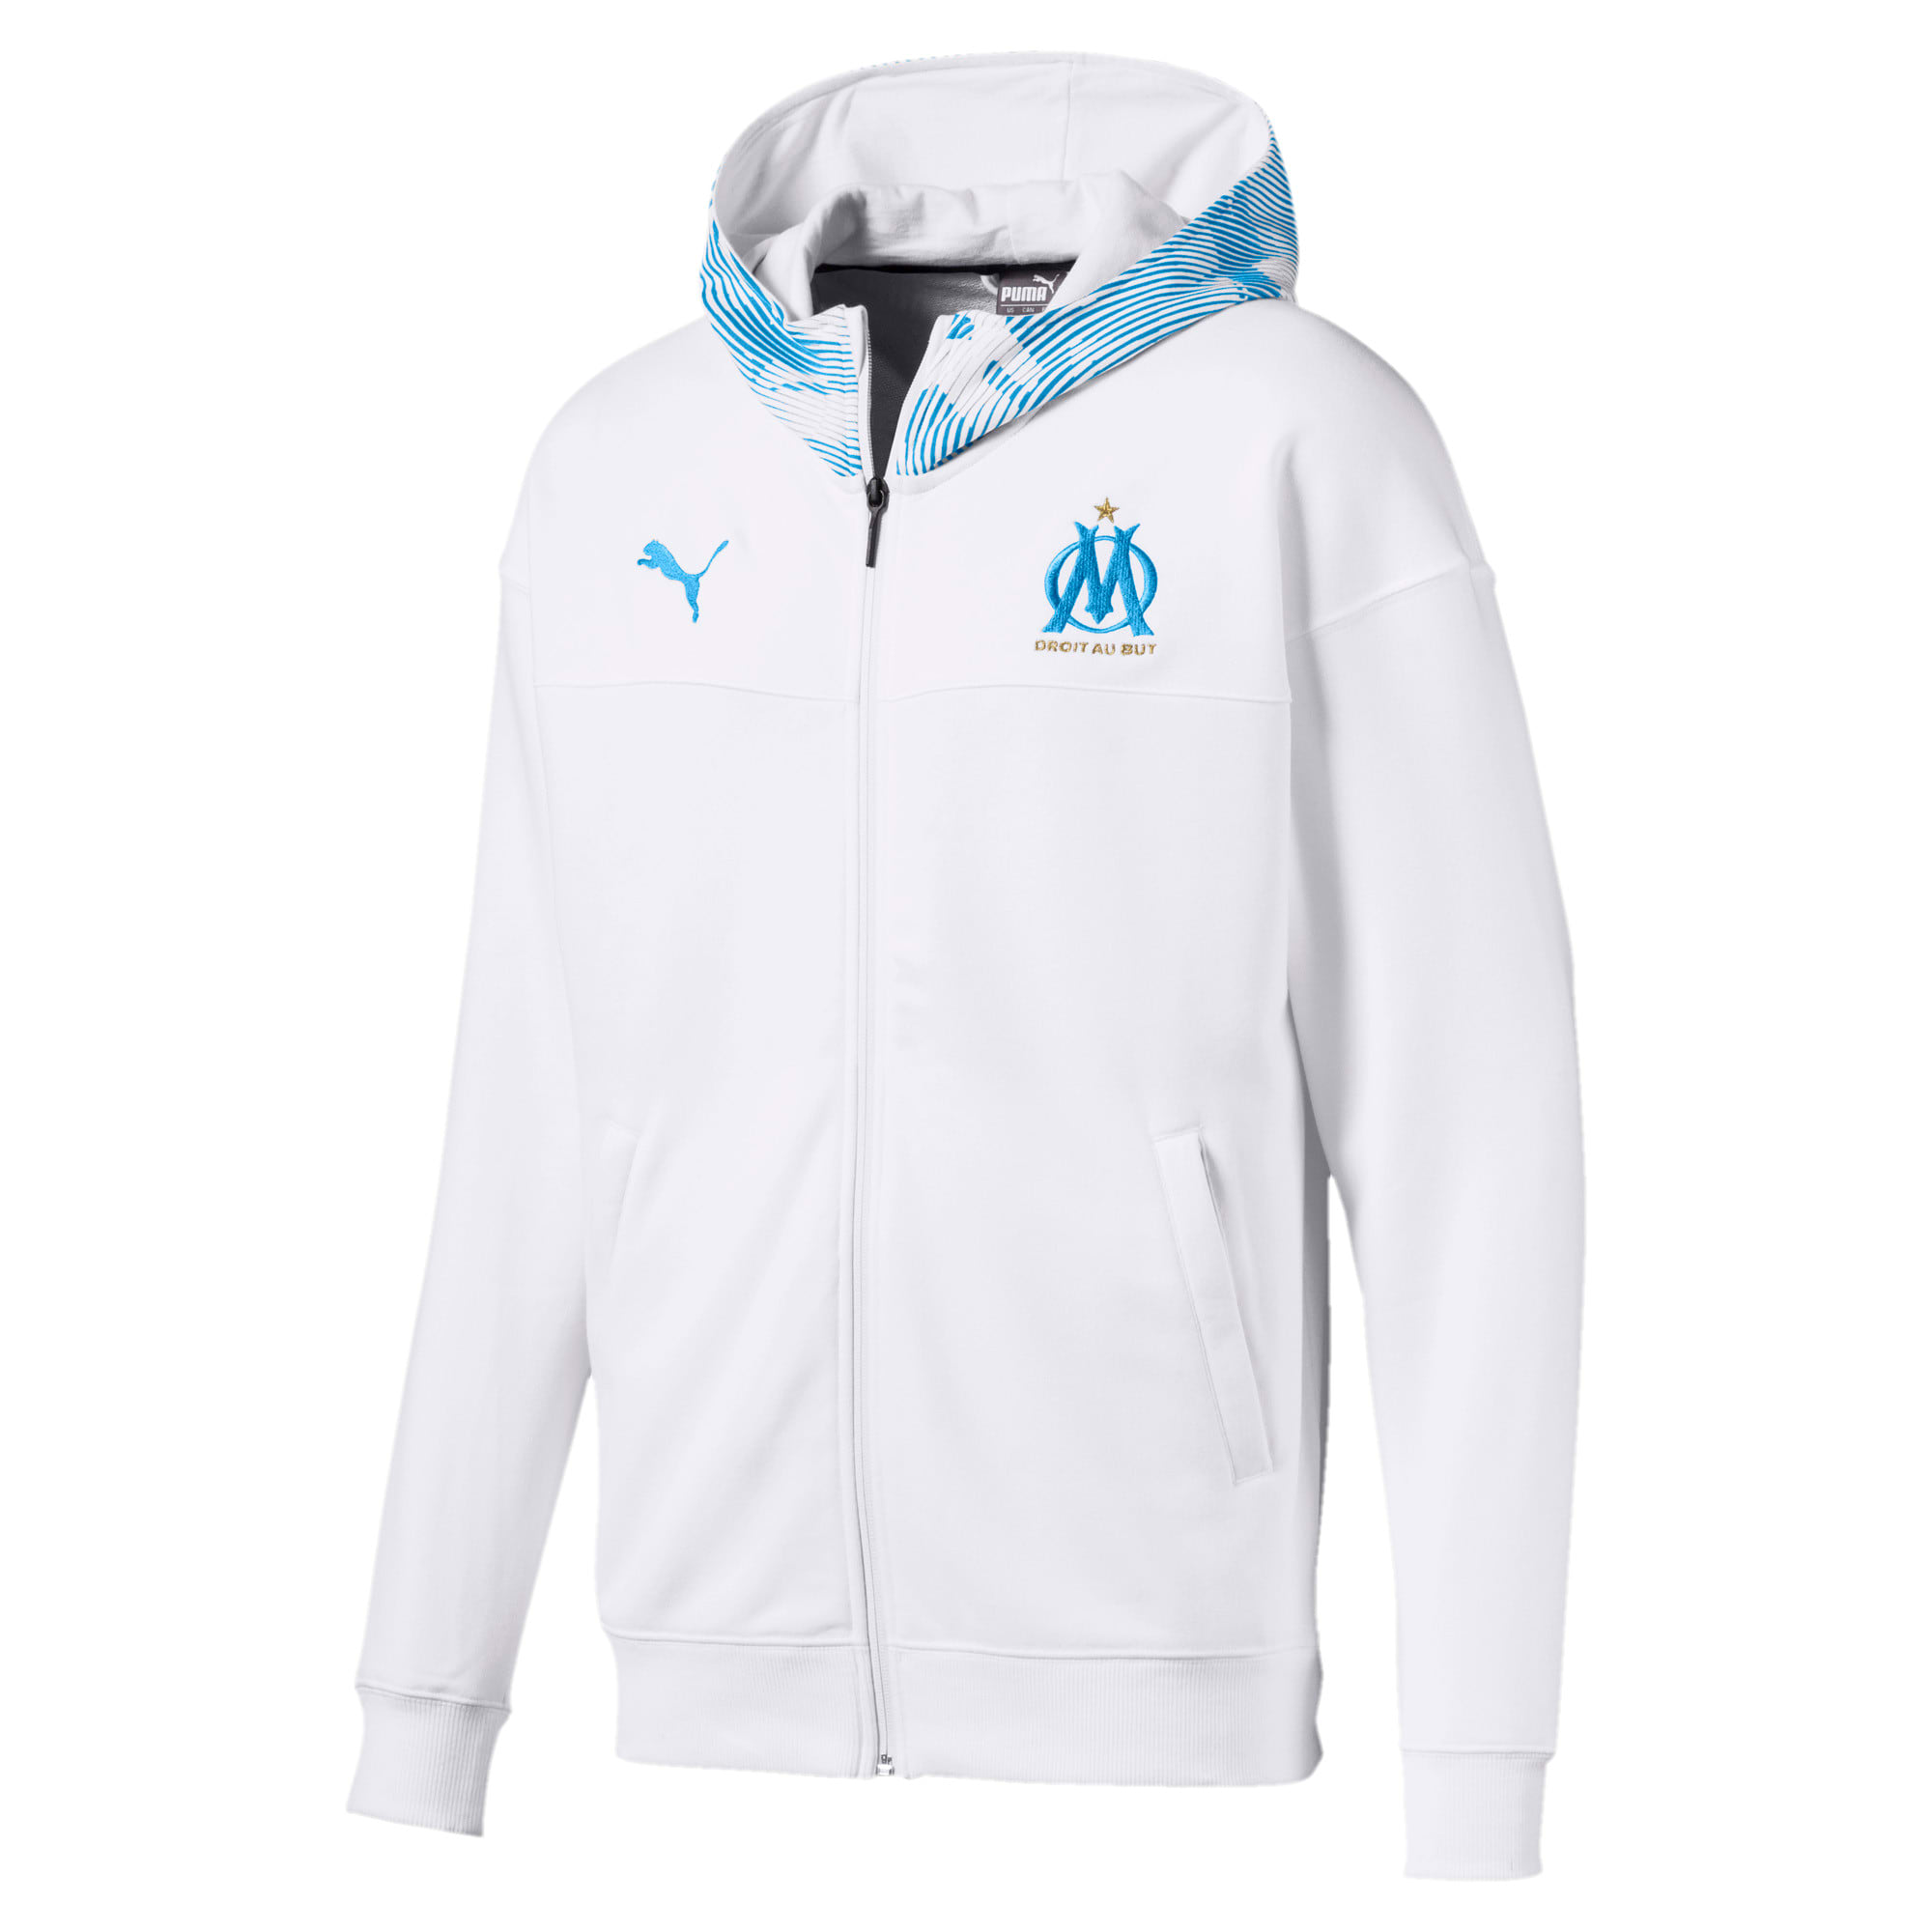 Thumbnail 4 of Olympique de Marseille Casuals Men's Zipped Hoodie, Puma White-Bleu Azur, medium